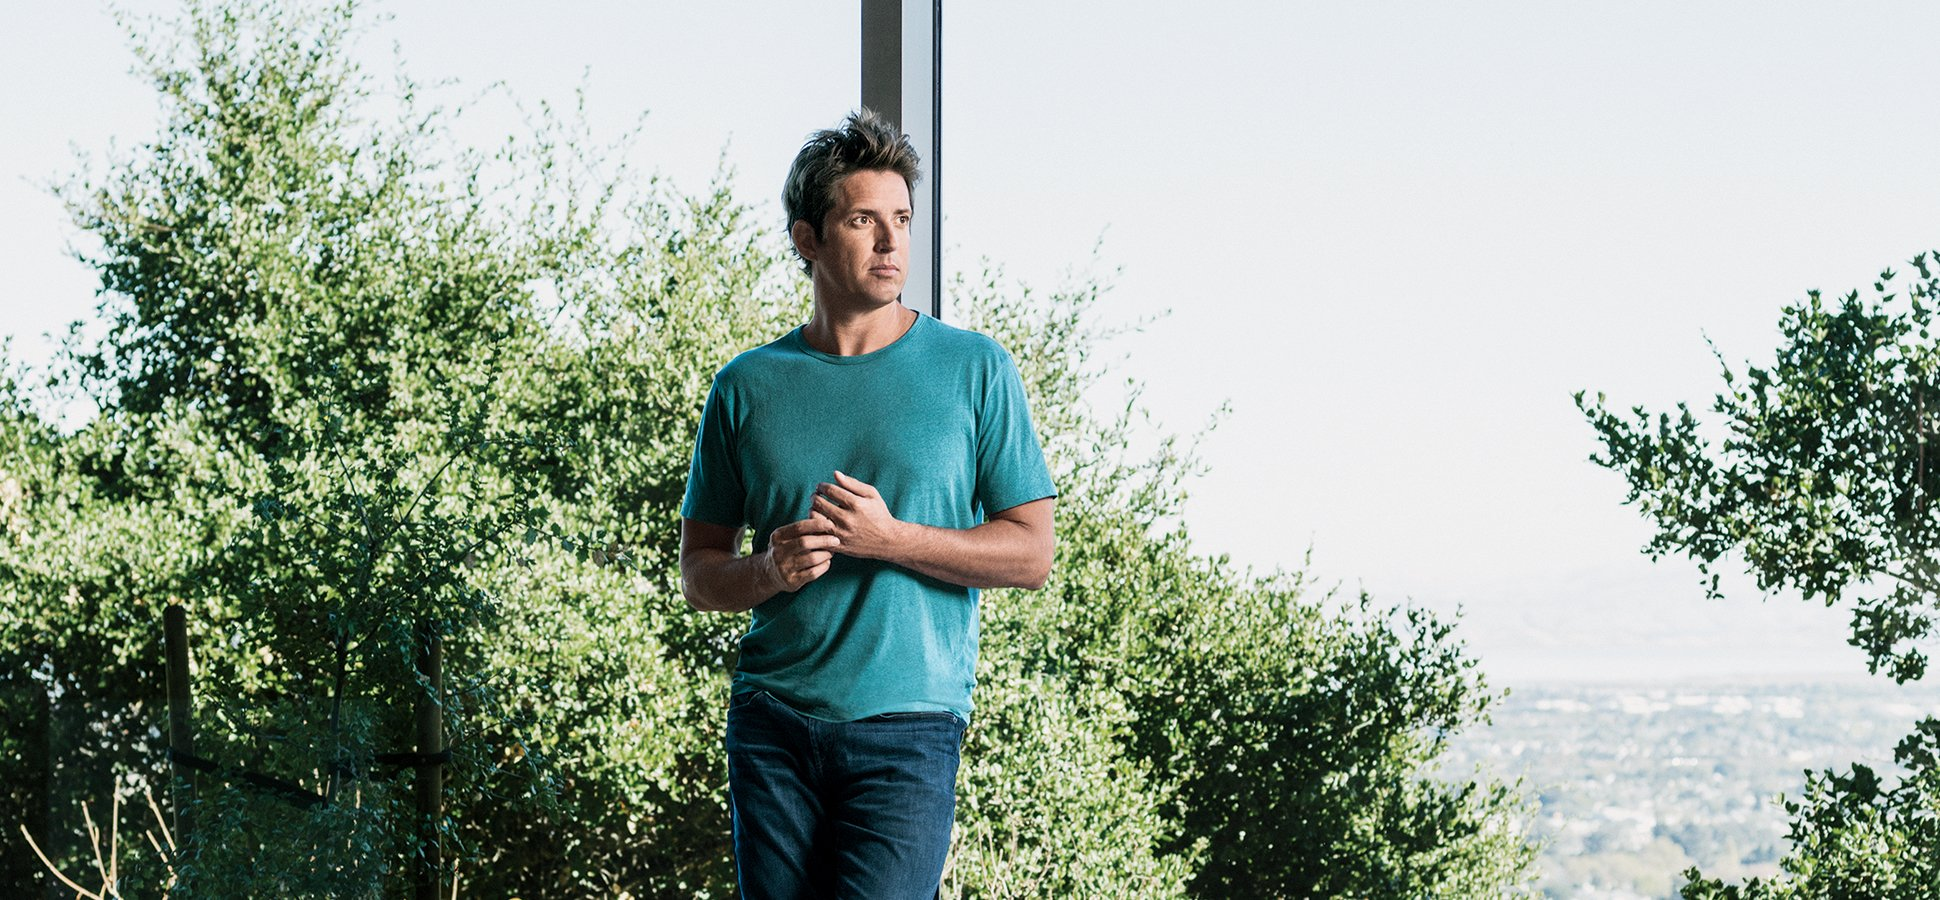 The Untold Story of How Massive Success Made GoPro's CEO Lose His Way. Can He Recover?